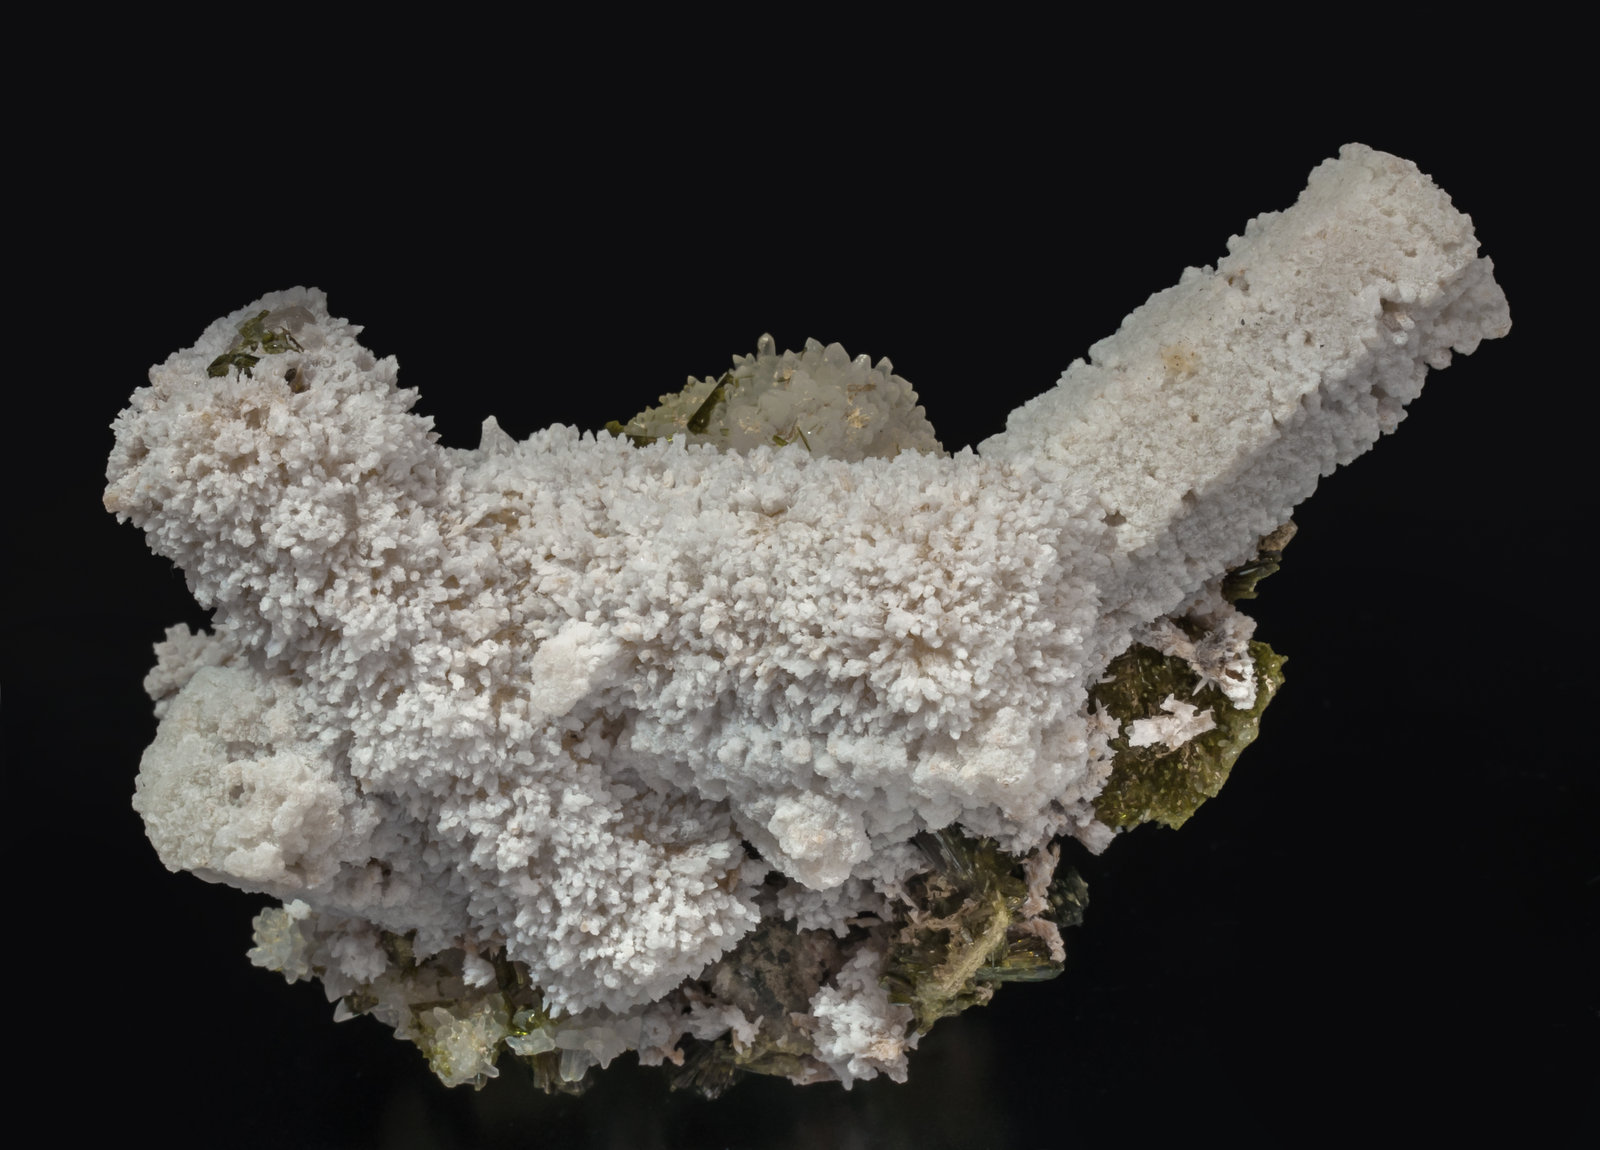 specimens/s_imagesAK8/Calcite-MX26AK8r.jpg